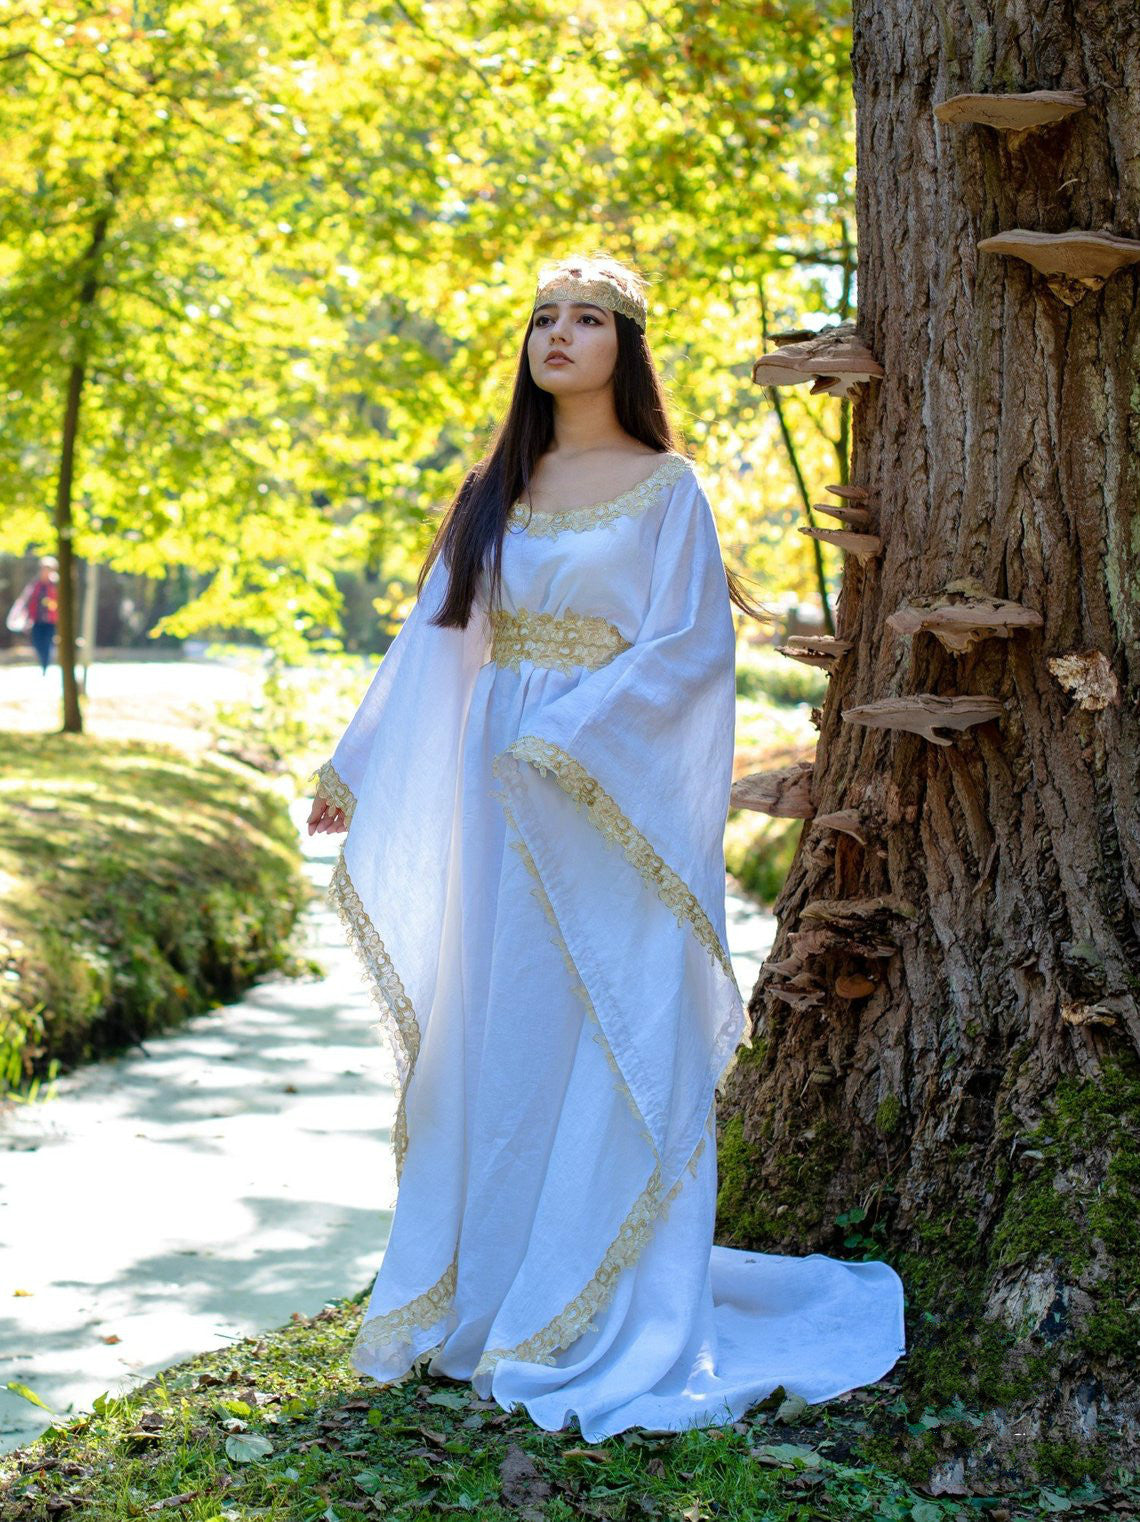 White Medieval Dress Celtic gown long sleeves renaissance costume for women